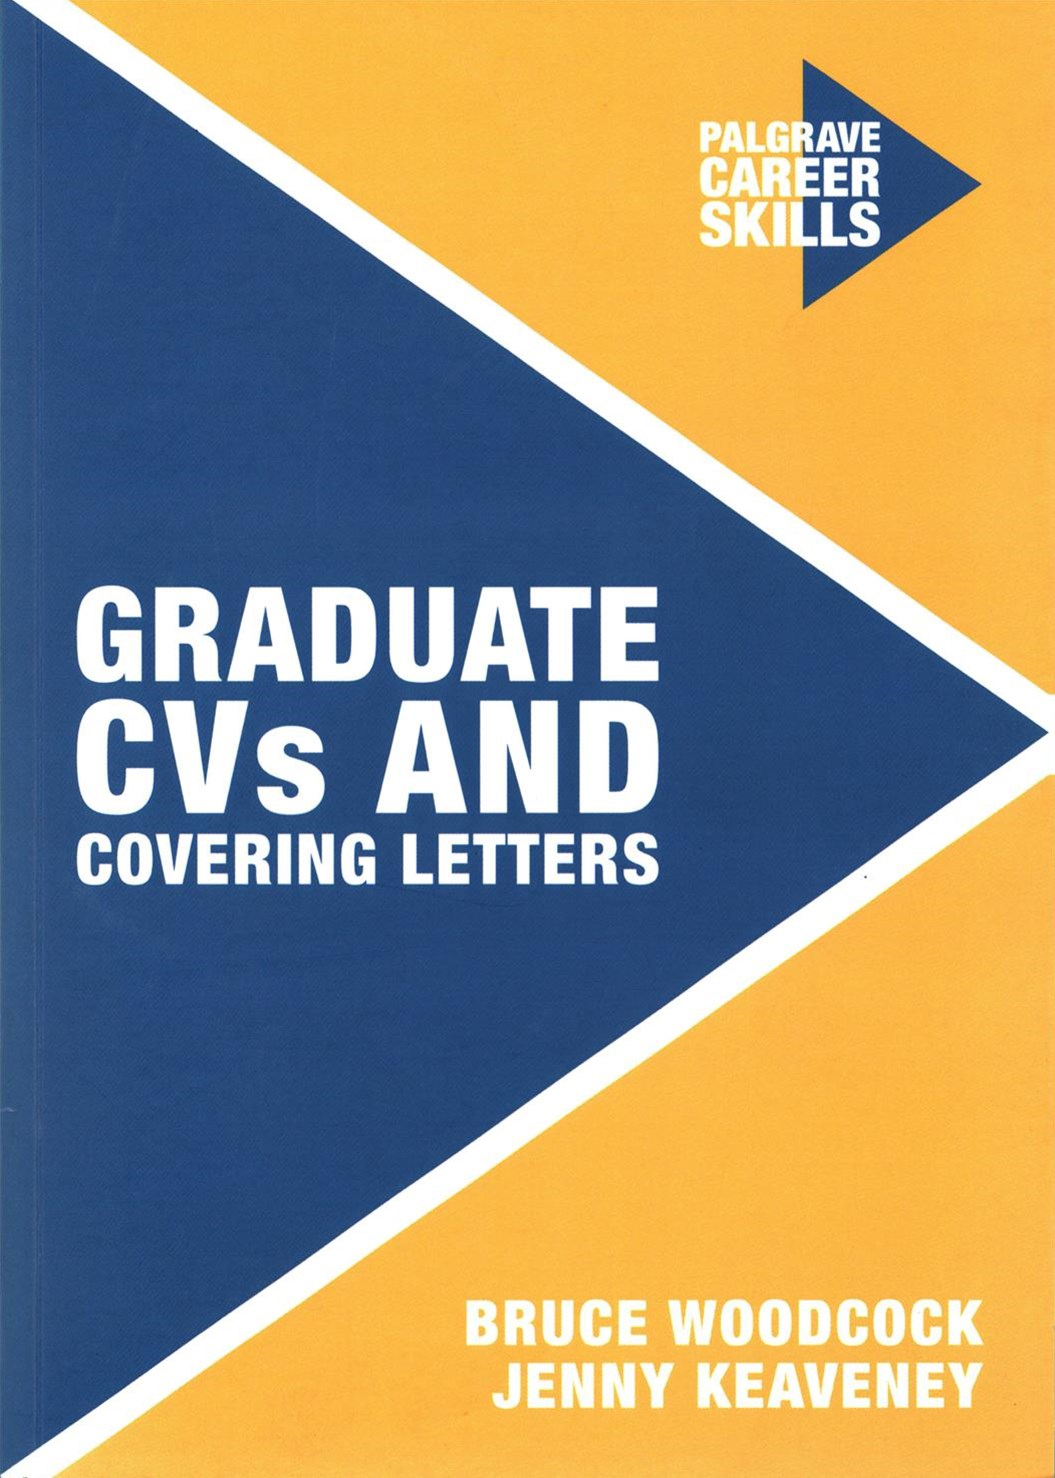 Graduate CVs and Covering Letters